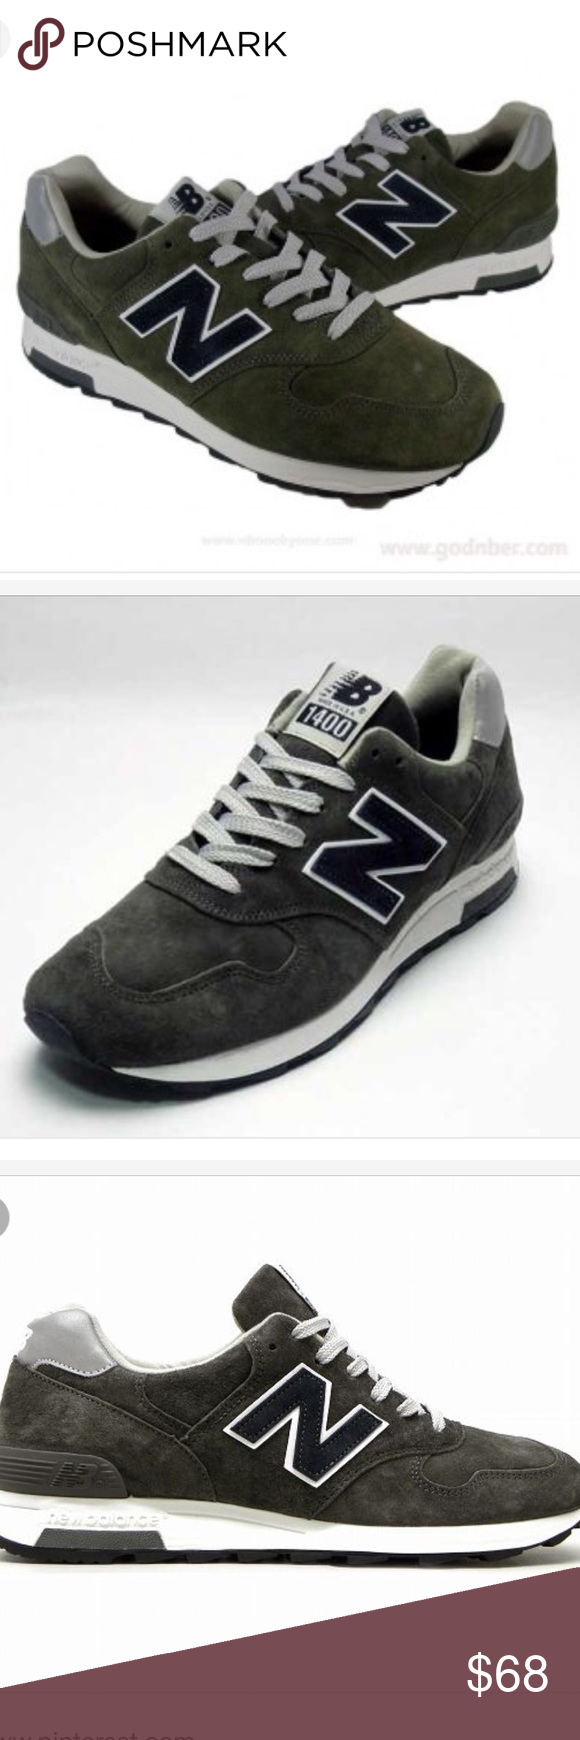 e8c57b601588 Collaboration New Balance for J Crew Sneakers New Balance M1400 DM JCrew .  Each pair is